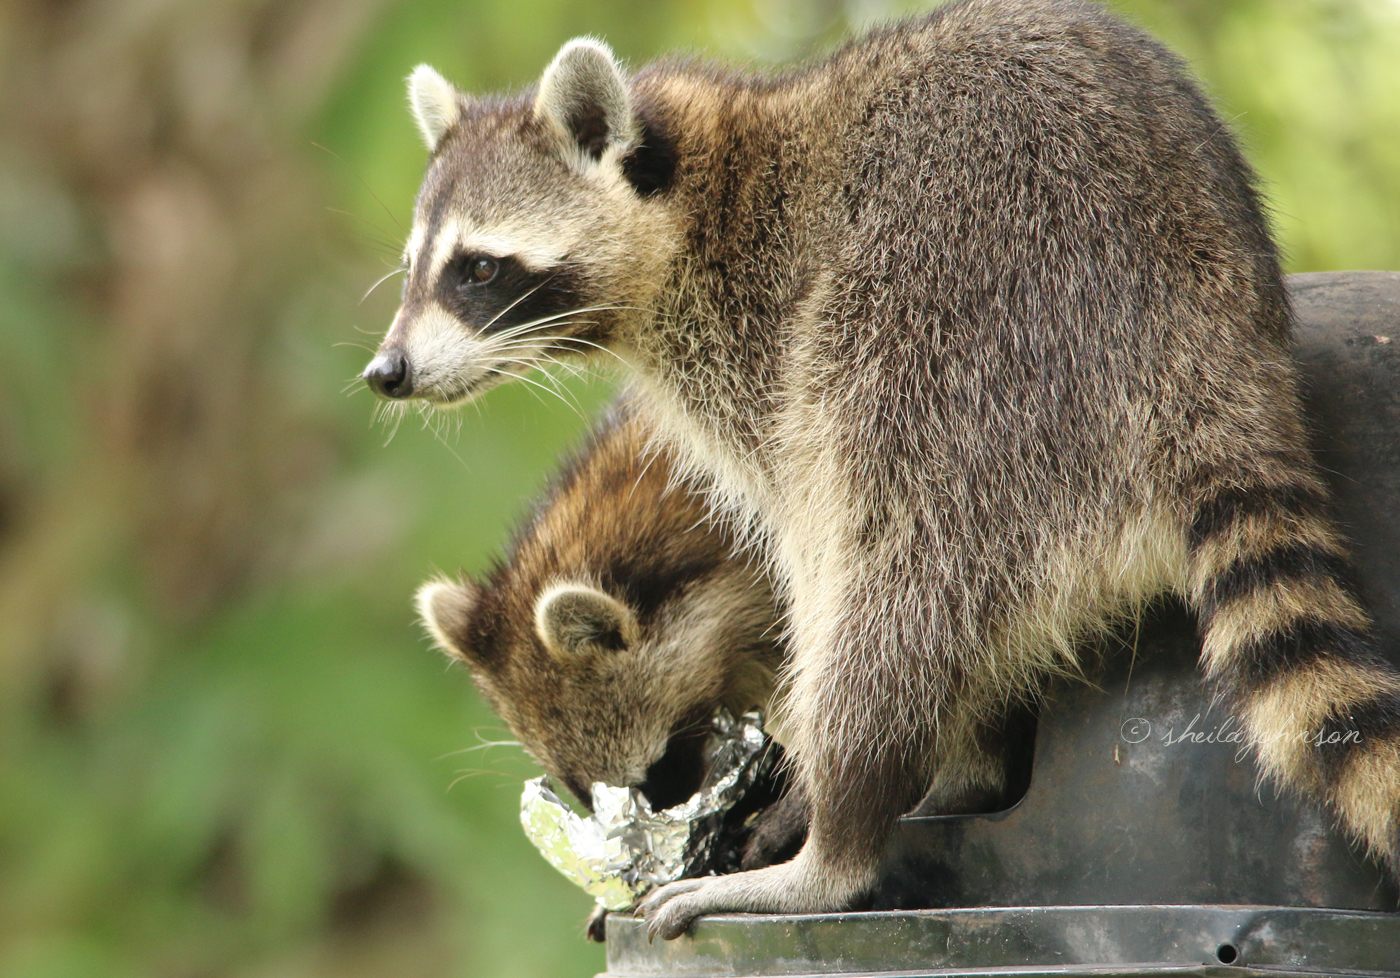 You Know That Quote About Being In Jail Next To Your Best Friend? We're Pretty Sure It Applies To These Raccoon Buddies. Here, They're Seen Making Their Daily Run At Rivergate Park In Port St. Lucie, Florida.